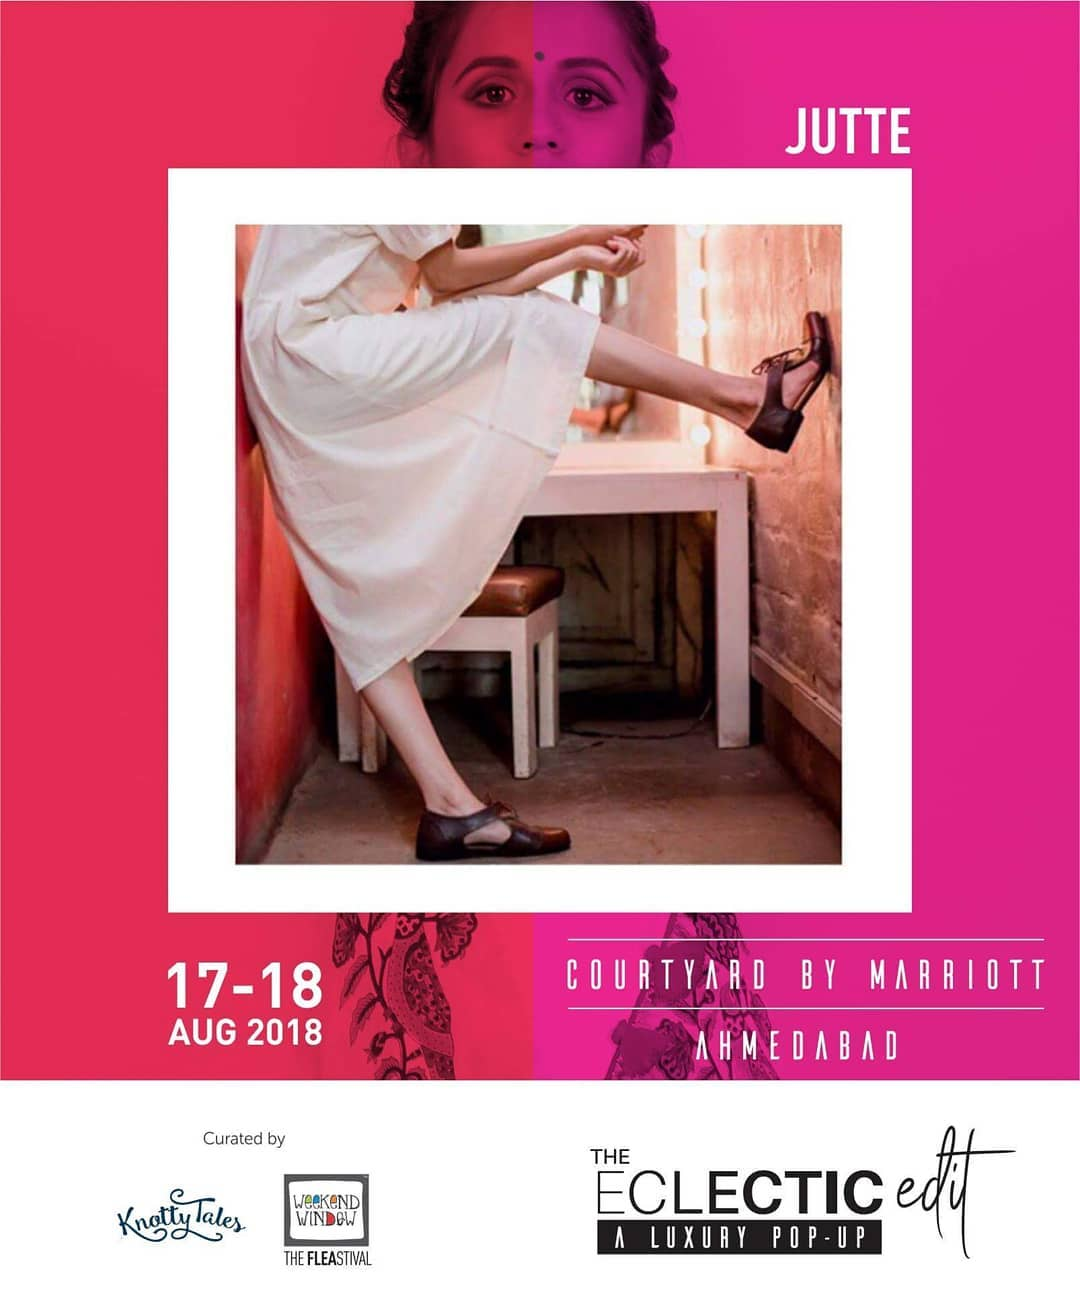 Shoes make an outfit. You can throw on a crazy shirt and crazy pants but you add those shoes by @jutte_thelabel and its done.  Showcasing 65+ designers this 17th-18th August at The Eclectic Edit - Season 3 curated by @knottytales_kt & @weekendwindow  at Courtyard by Marriott Ahmedabad.  #Juttethelabel #Handcraftedleather #Shoedesignerinahmedabad #shoedesigner #leathershoes #handcraftedluxury #mensshoesinahmedabad #ownanjutte #theeclecticedit3 #knottytales #weekendwindow #aluxuypopup